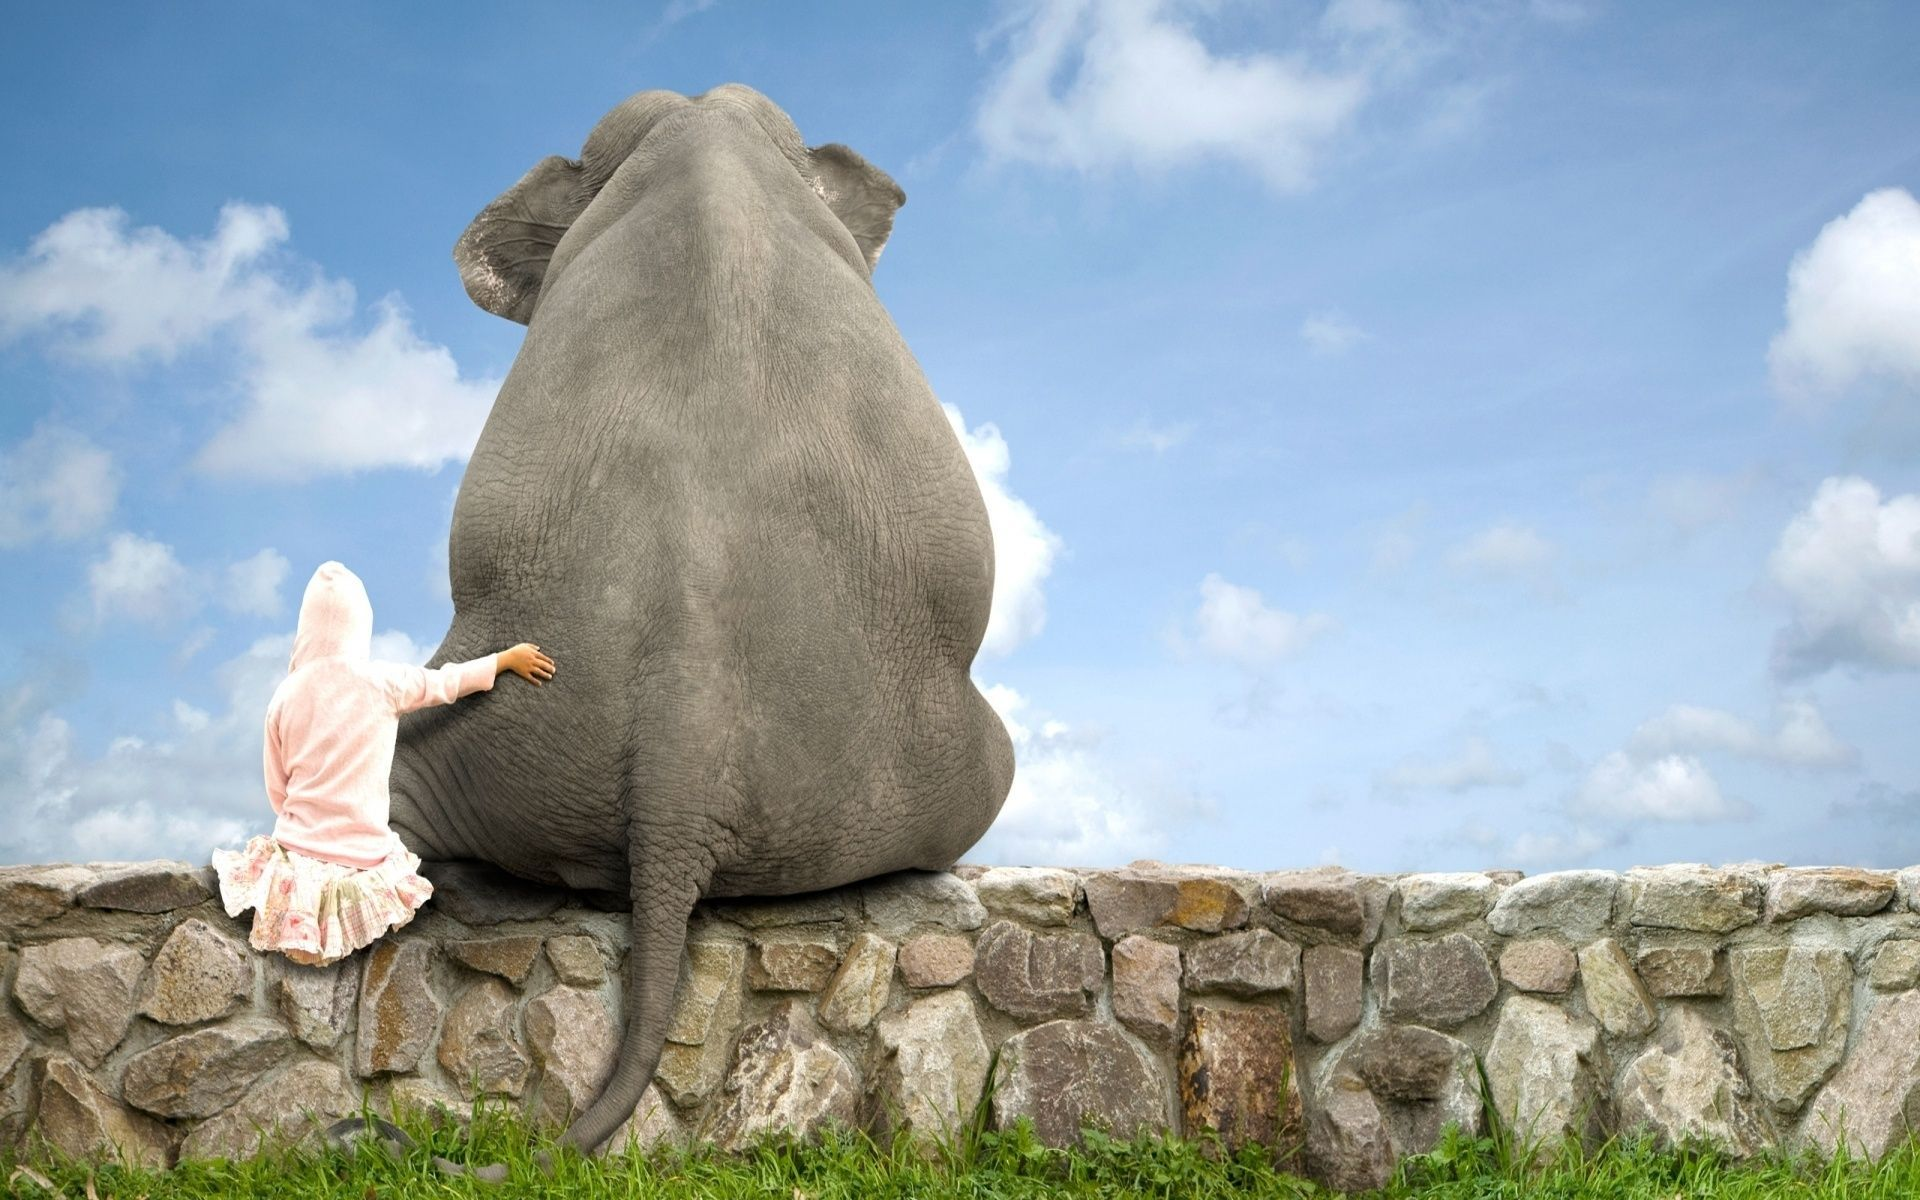 elephant wallpaper best hd wallpaper 2260×1502 elephant wallpaper